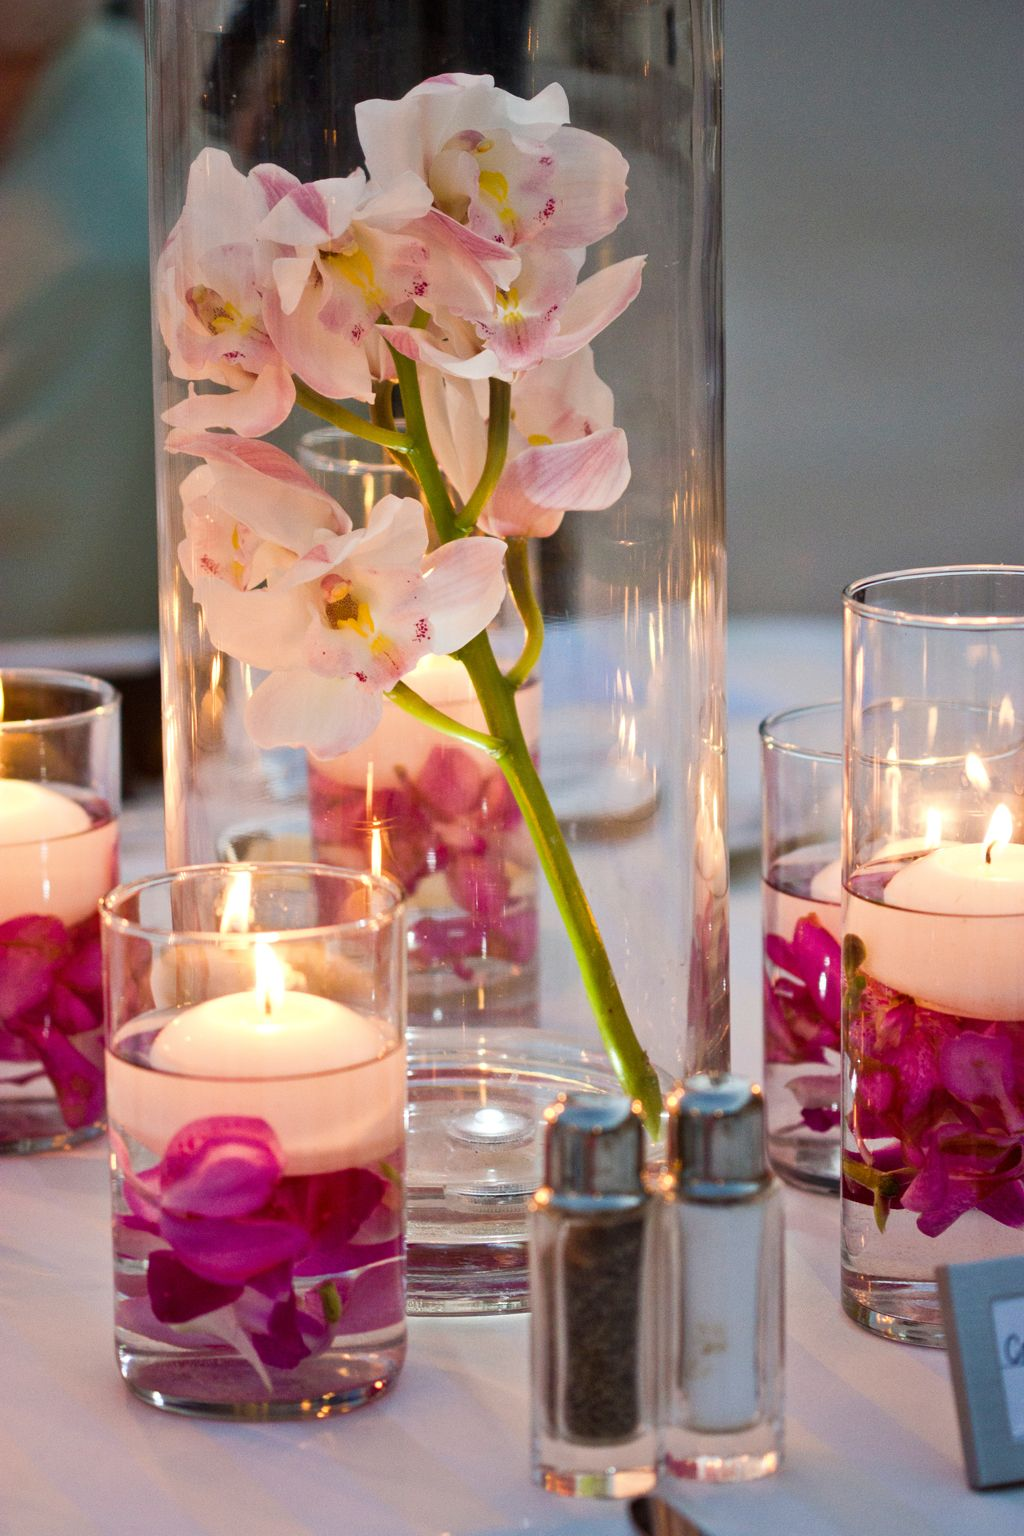 Maui wedding orchid centerpieces with floating candles by unique table vase design for decorations ideas interior pink orchid put inside glass vase having candle light too pretty decorations of orchid centerpieces reviewsmspy